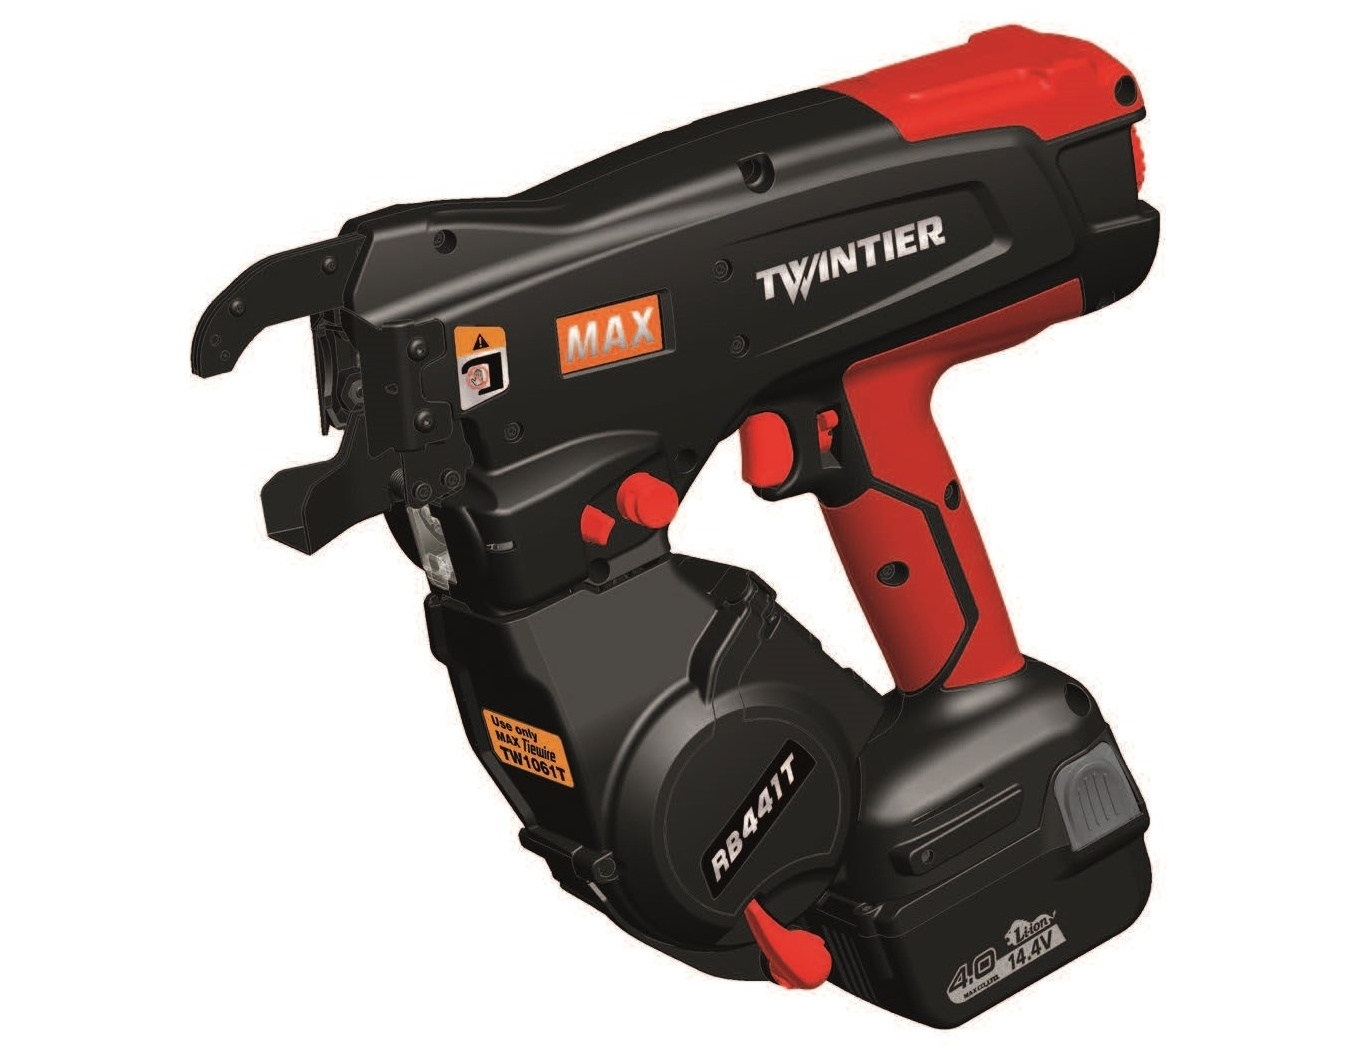 MAX TWINTIER RB441T